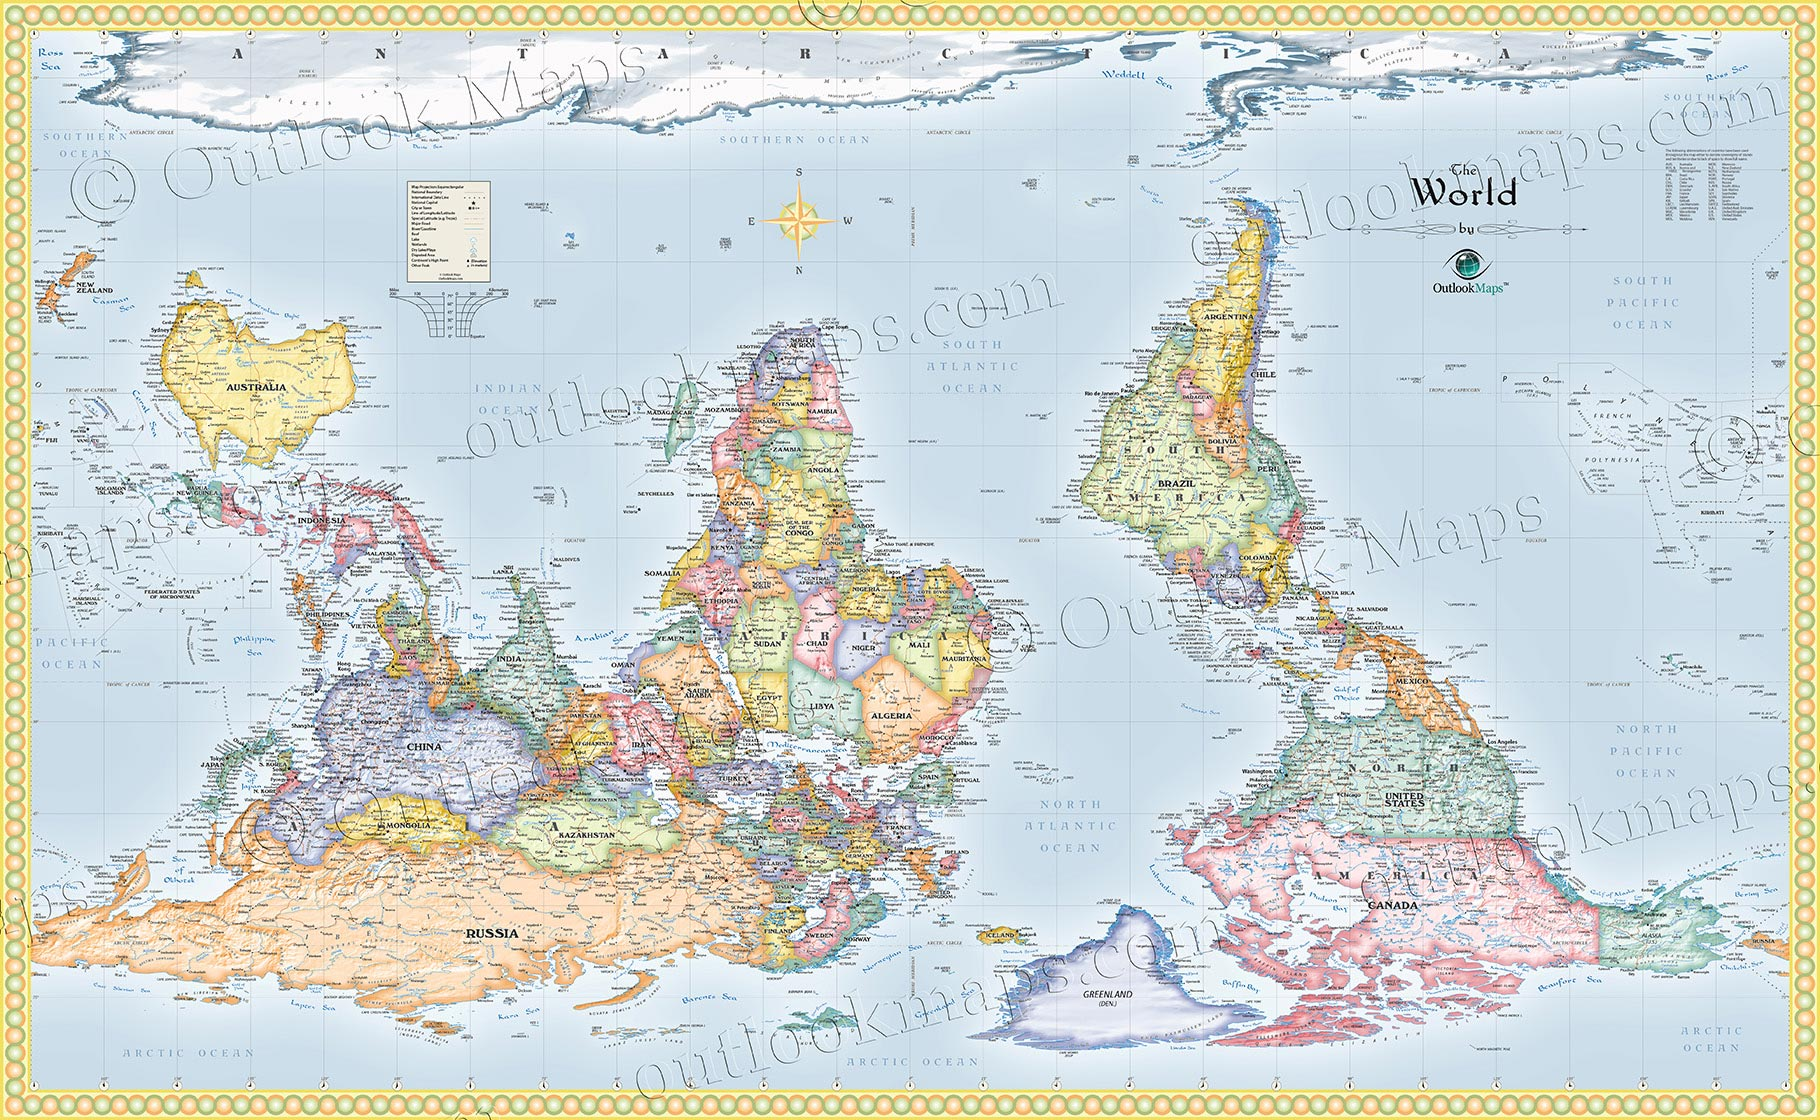 upside down political map of the world